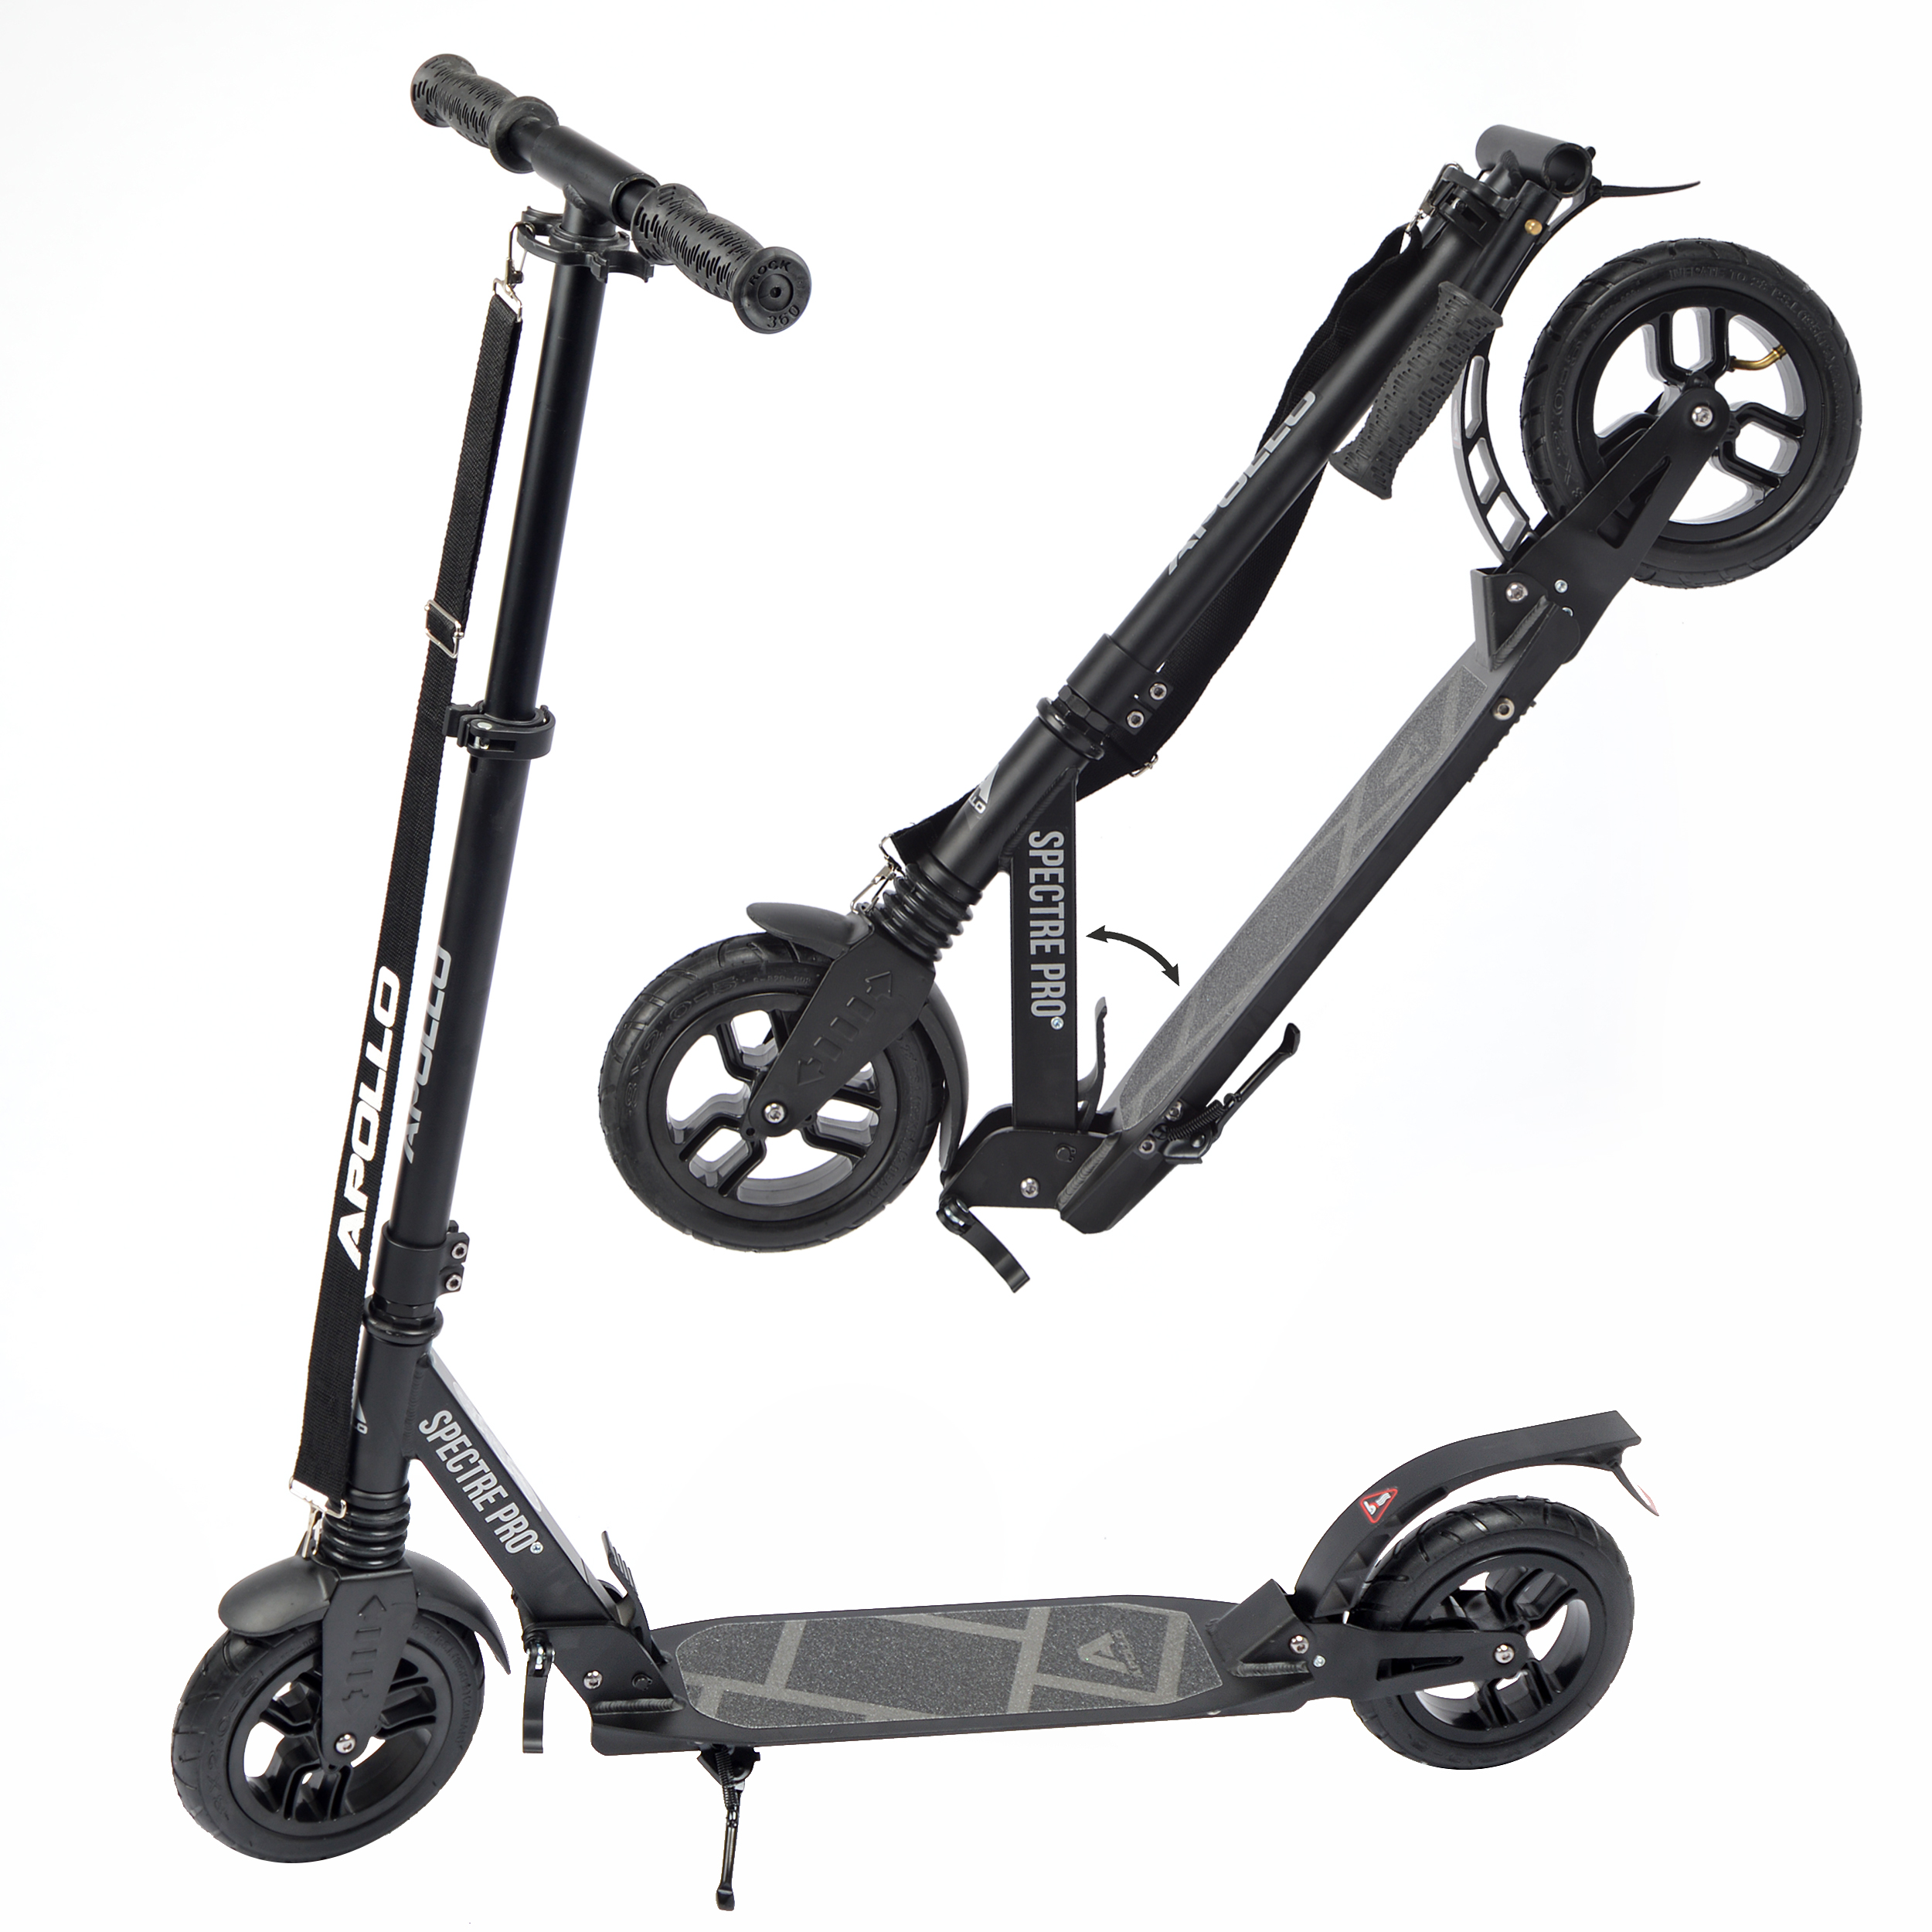 City Scooter - Spectre Pro - Air